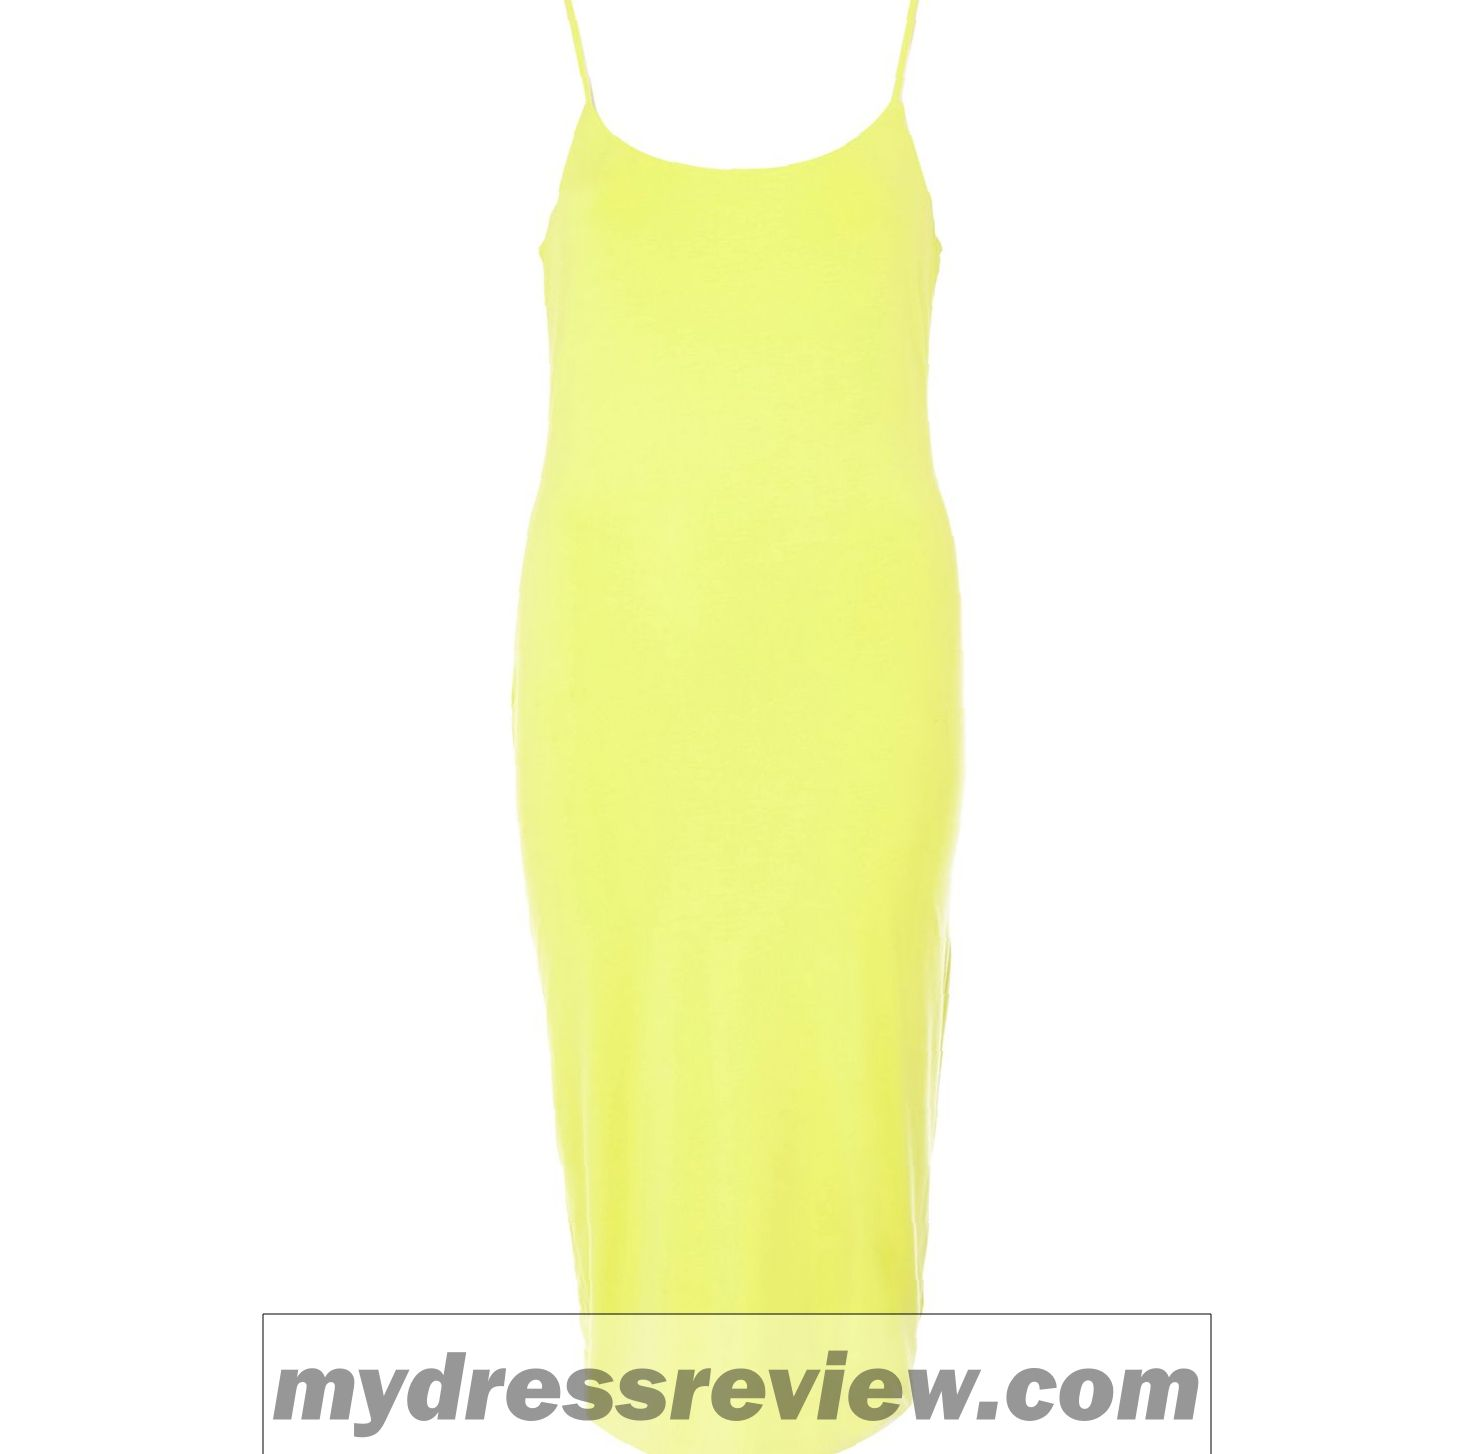 Yellow River Island Dress & Clothing Brand Reviews